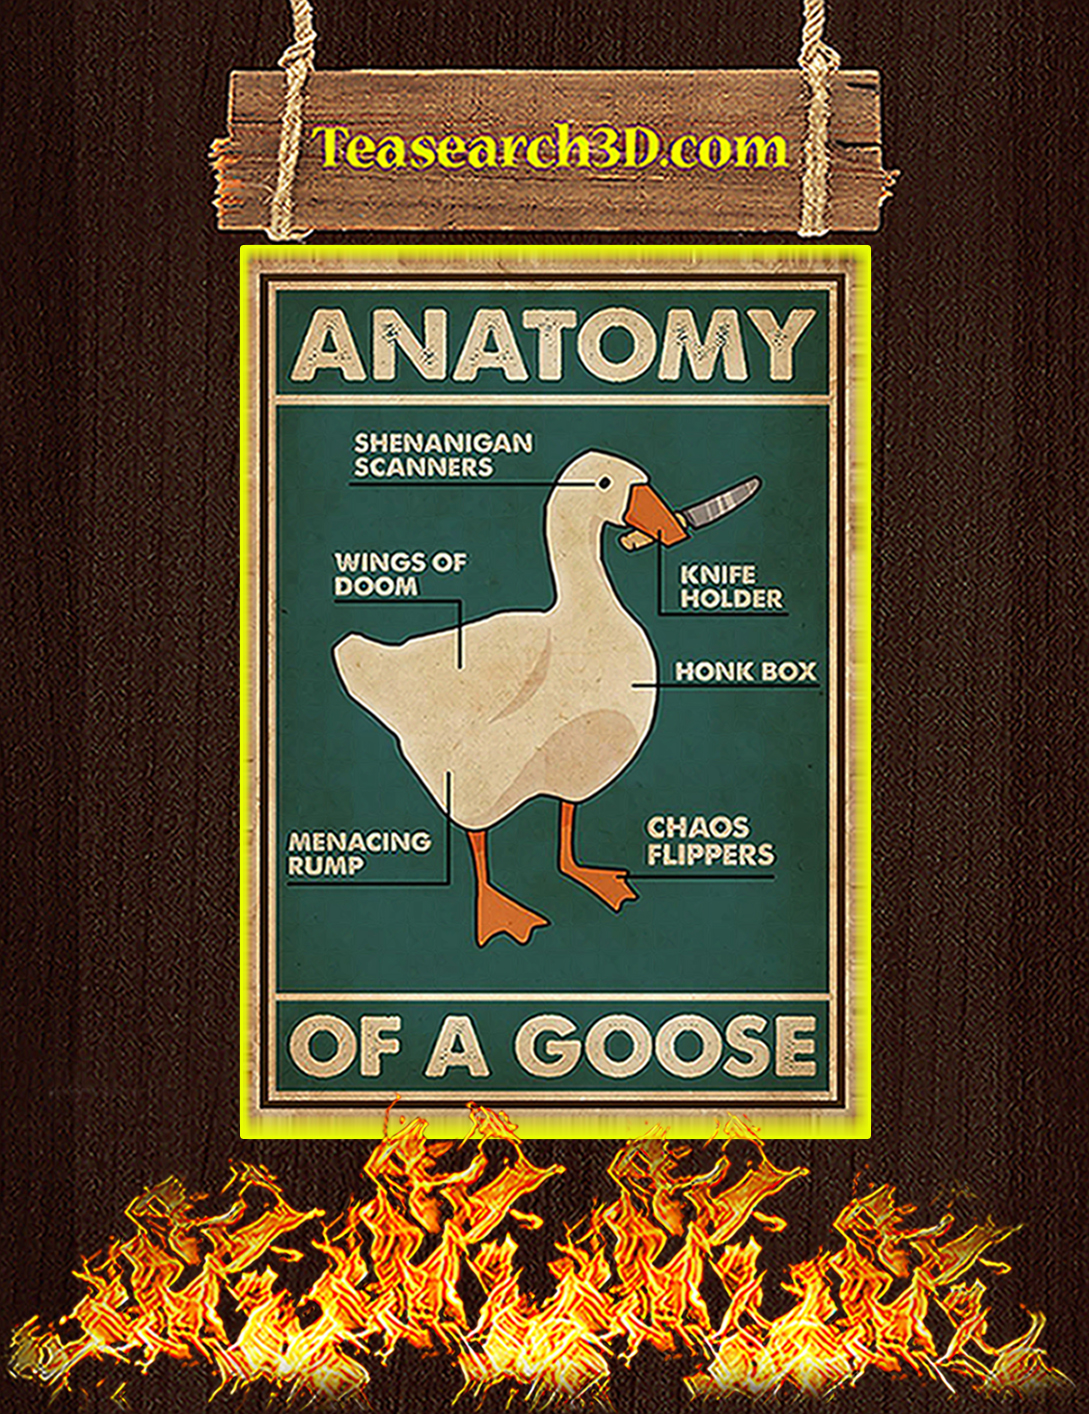 Anatomy of a goose poster A2